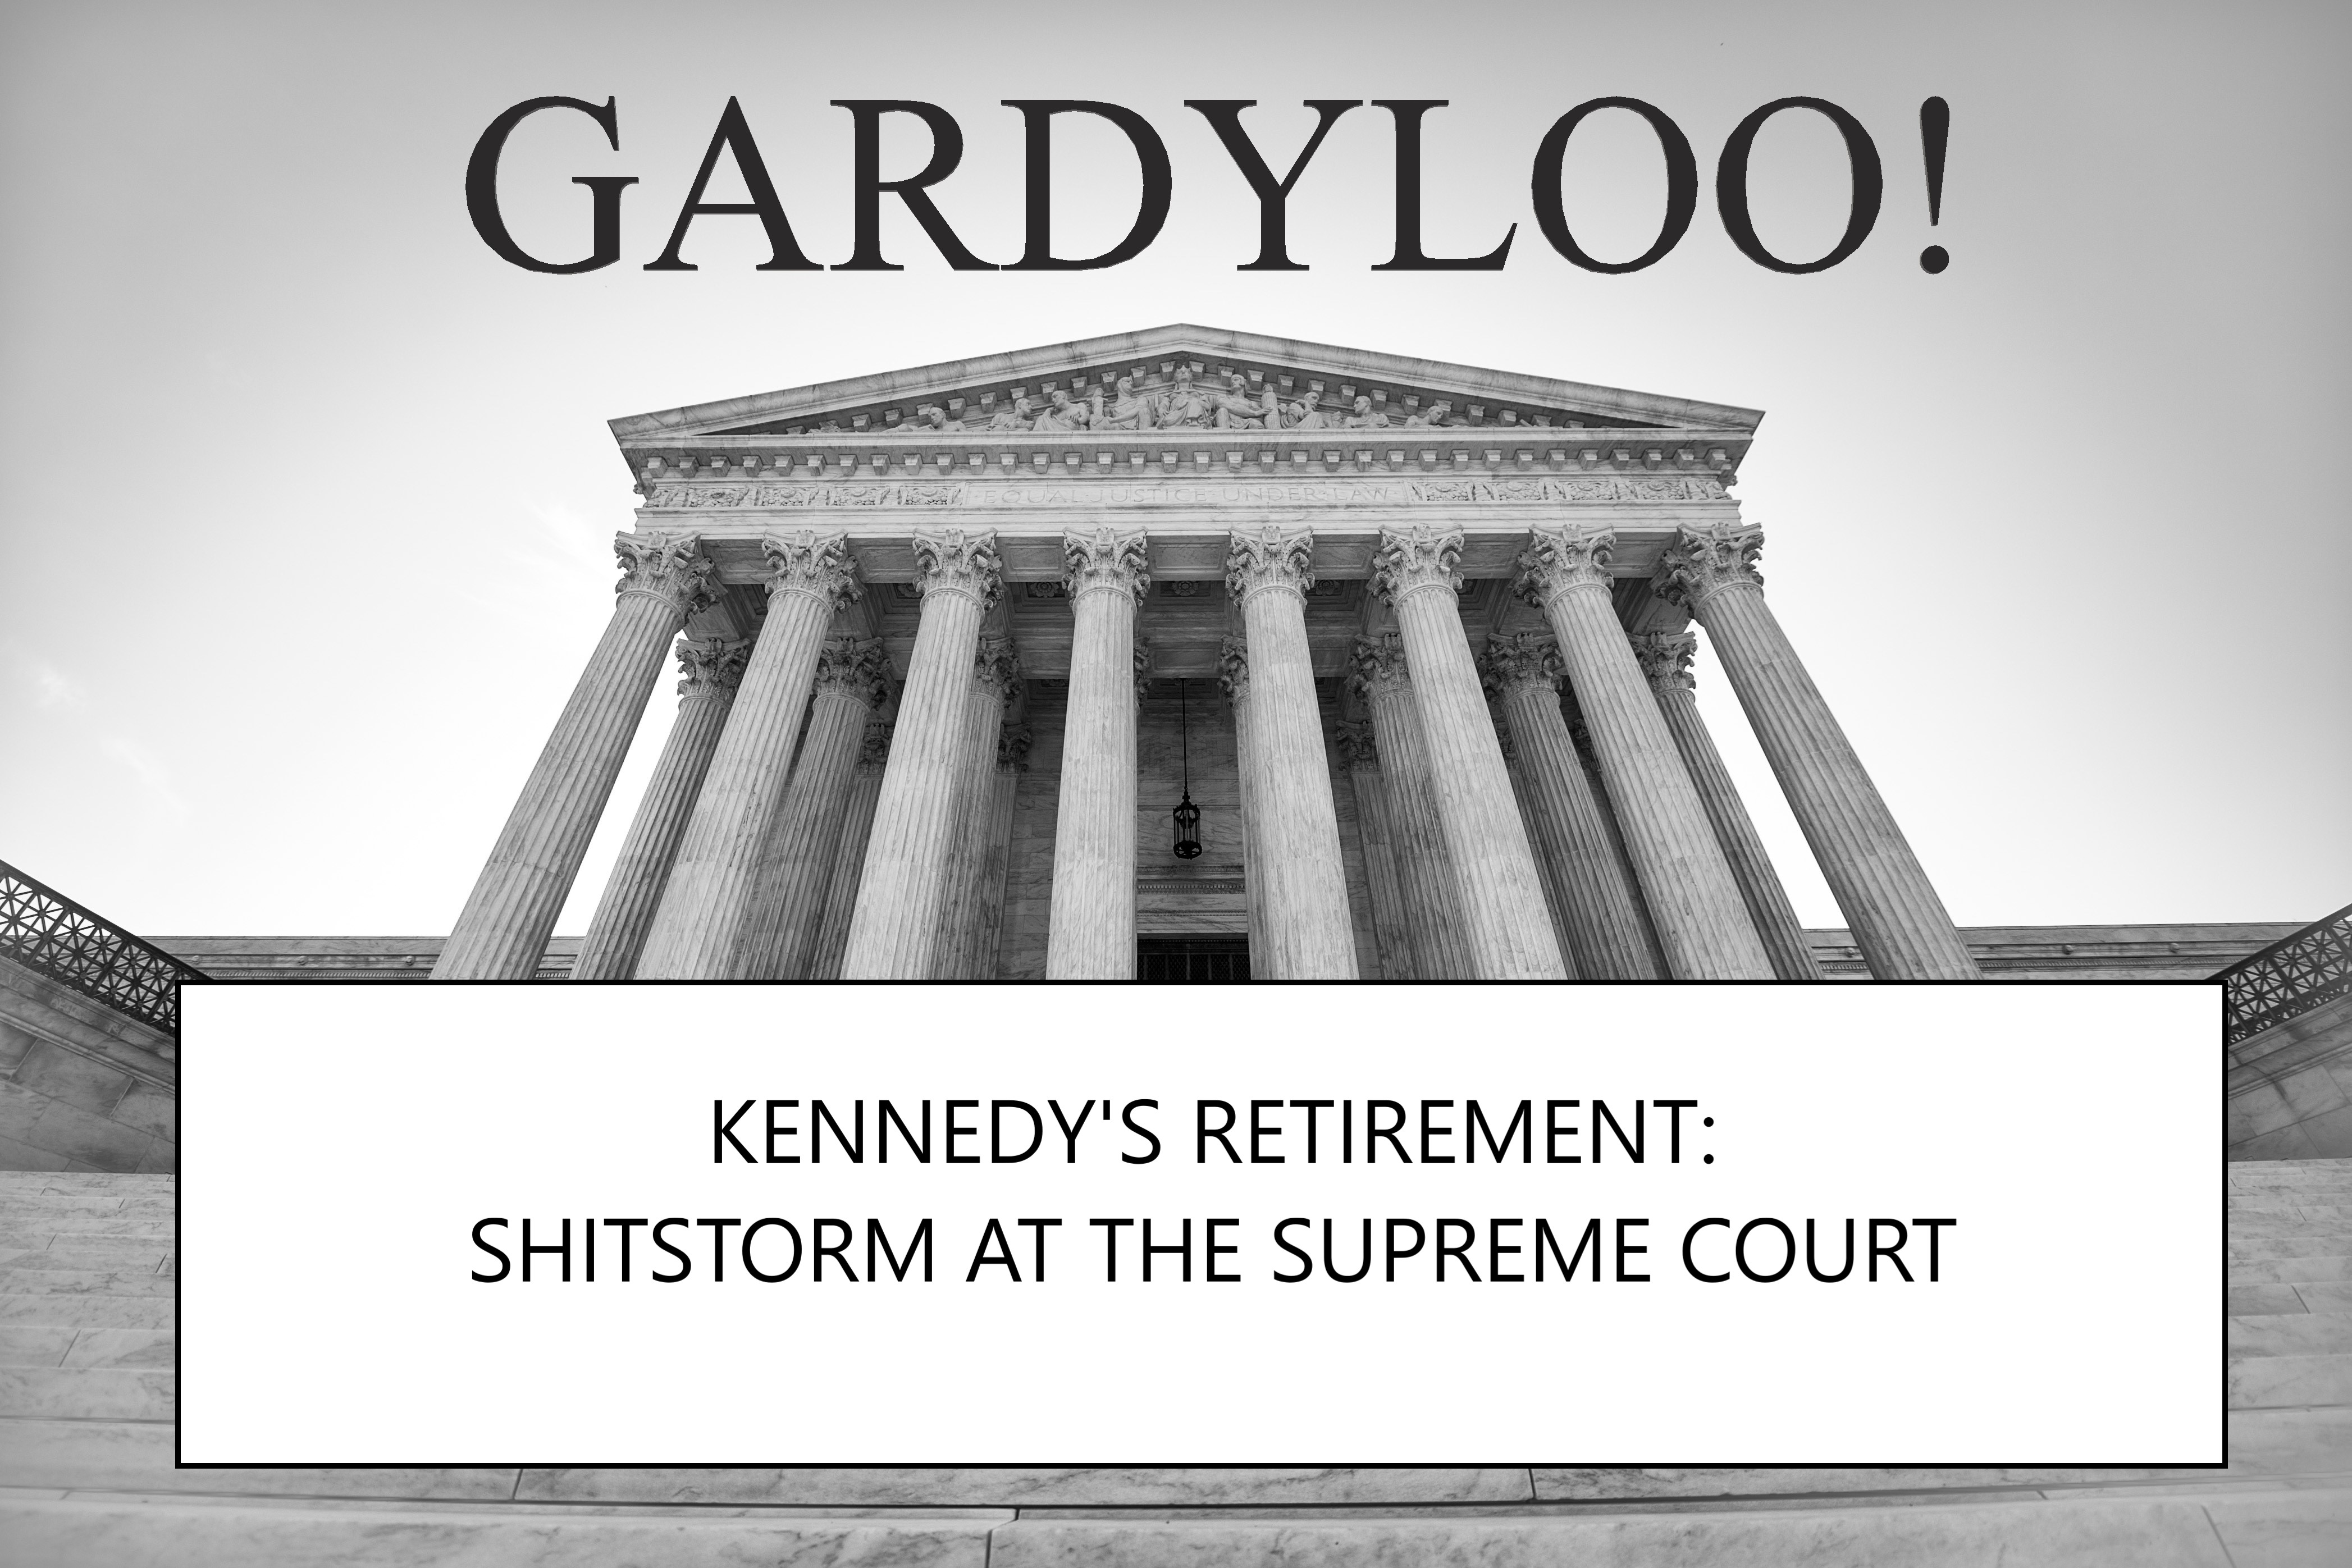 Gardyloo! – What Justice Kennedy's Retirement Means For The Rule of Law In America